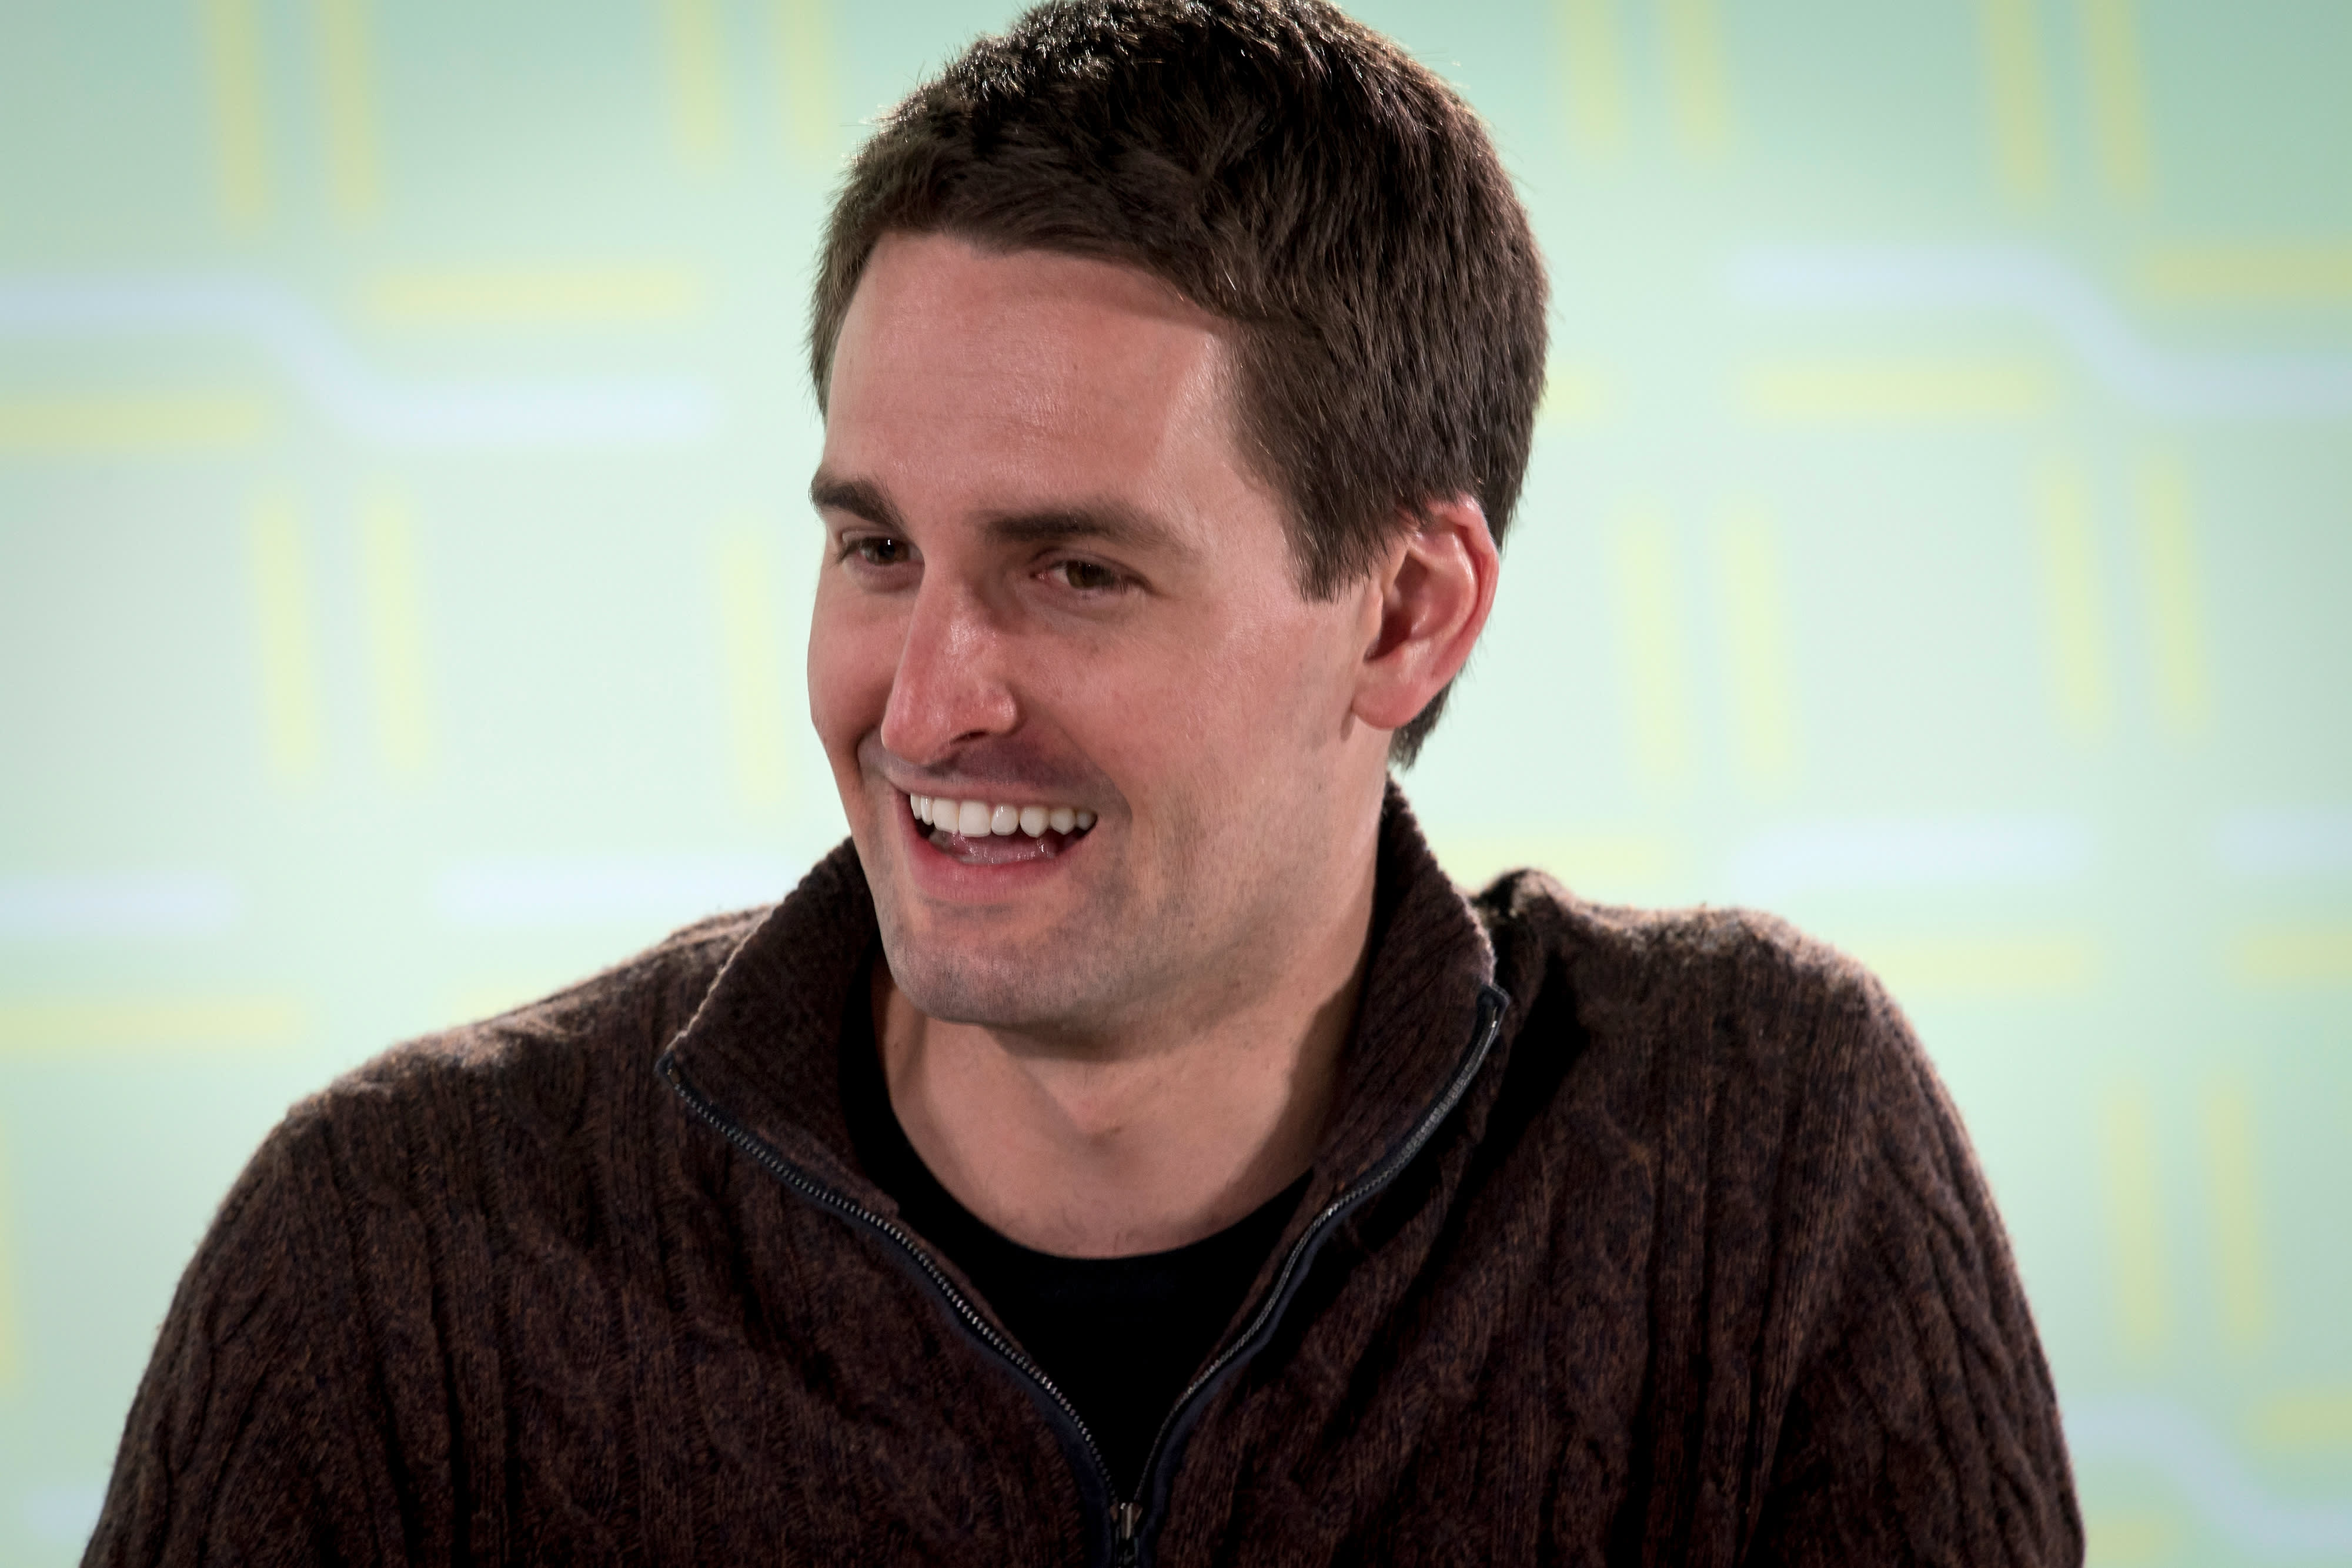 Snapchat fact-checks political ads, unlike Facebook, says CEO Evan Spiegel